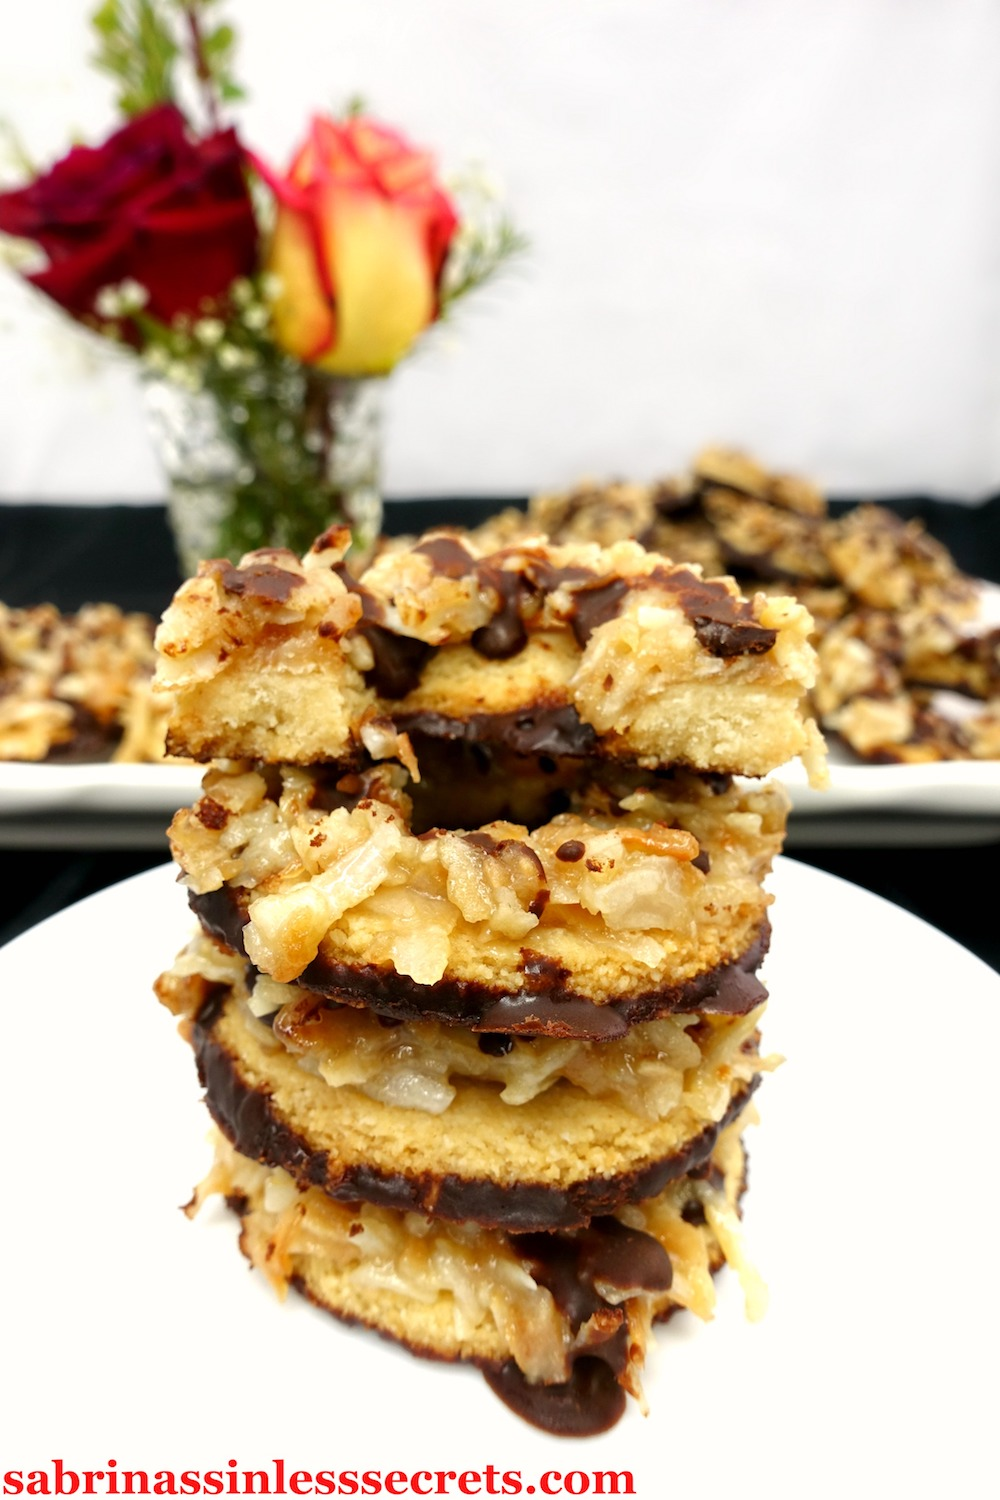 These Paleo and Vegan Samoa Cookies are just like the boxed Girl Scout ones! Thick, gooey caramel merges with toasted coconut to put an irresistible coating over crisp, shortbread cookies! The homemade dark chocolate on the bottoms and a drizzle on top makes these ring-shaped wonders even more of a delight. You won't believe they're Paleo, vegan, dairy-free, refined sugar-free, gluten-free, grain-free, and clean-eating!